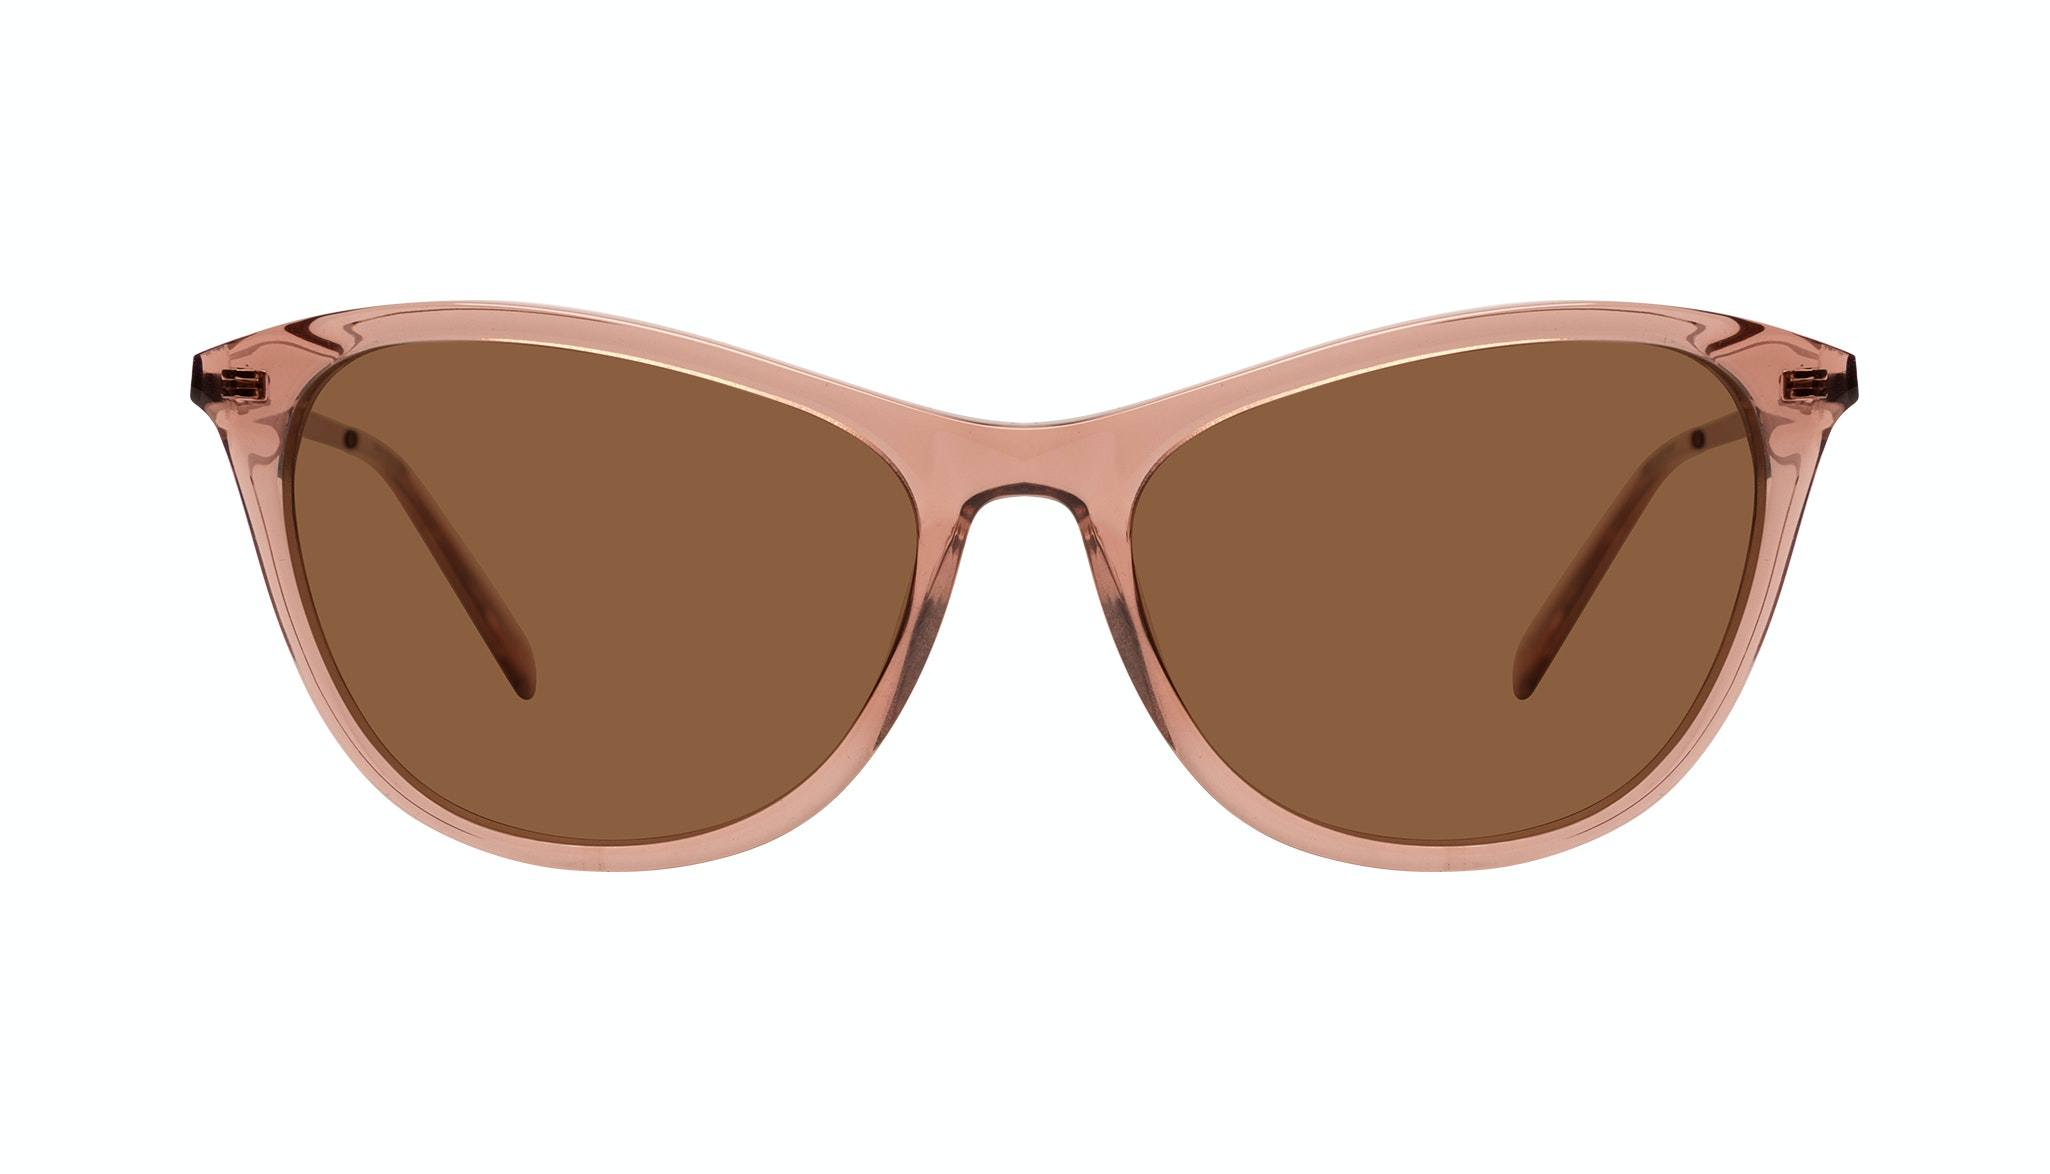 Affordable Fashion Glasses Rectangle Sunglasses Women Folk Plus Rose Front